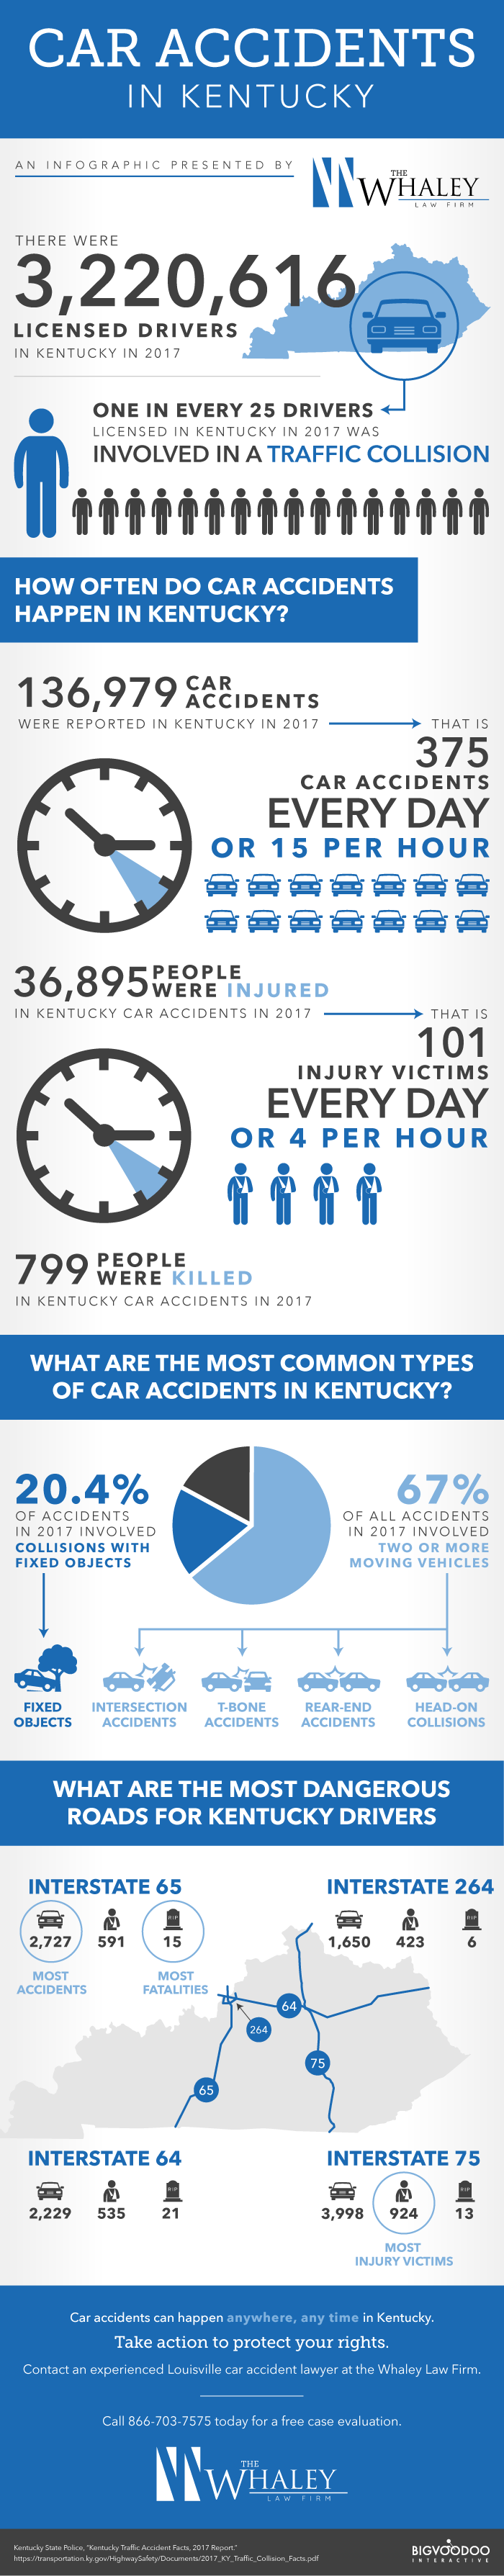 Whaley Car Accident infographic